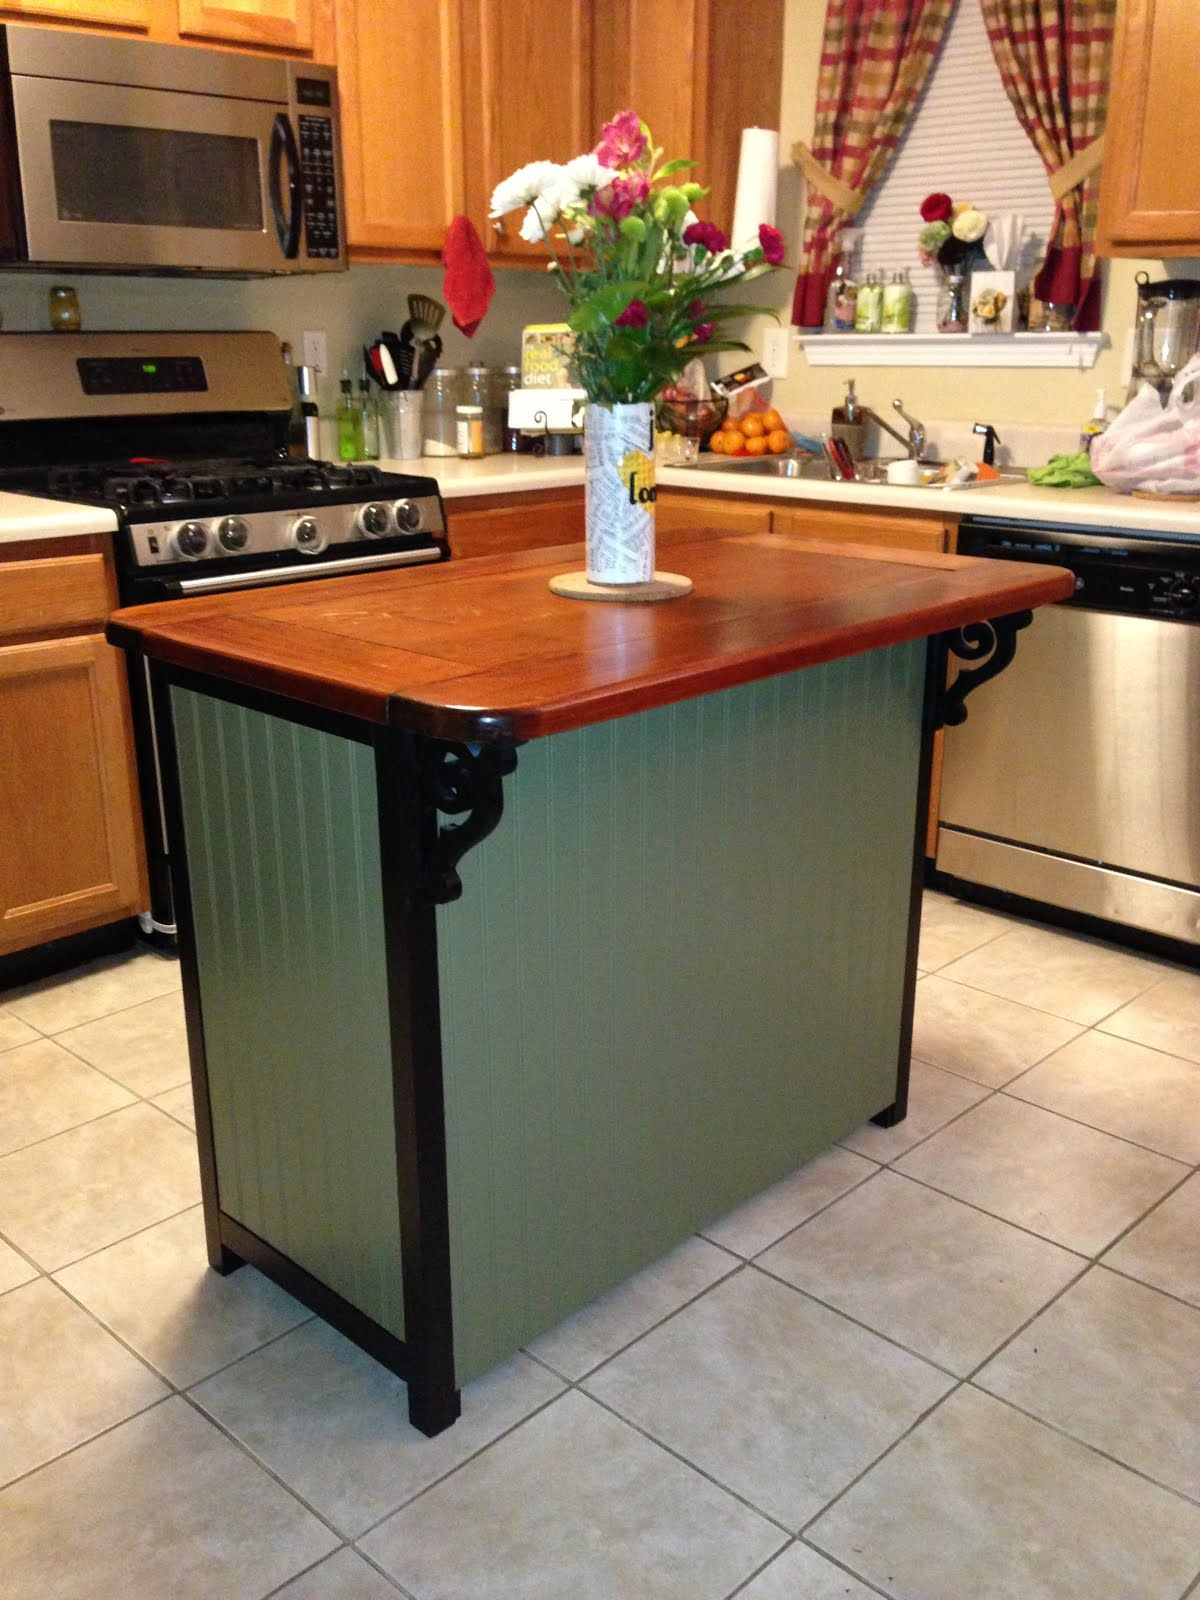 work table kitchen island | ... Kitchen islands 1200x1600 ikea ...